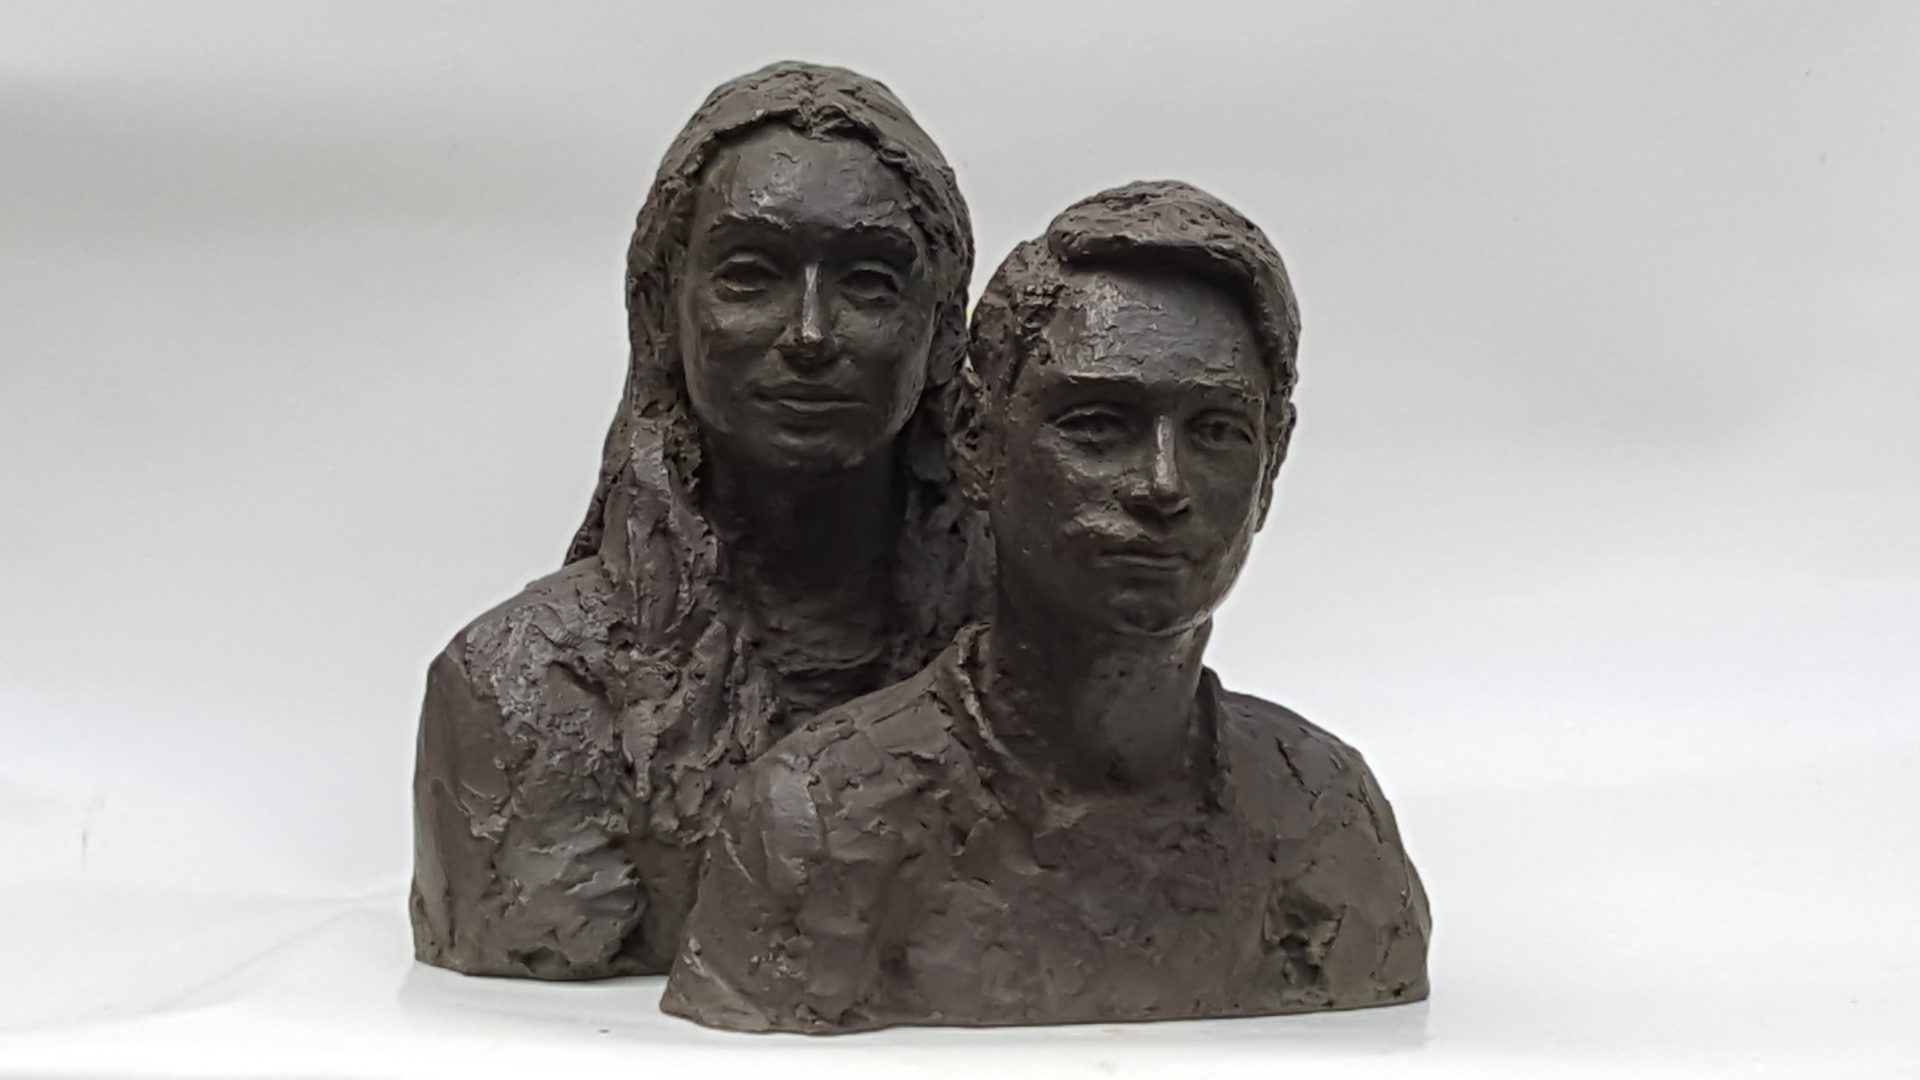 Sculptures by Emilie